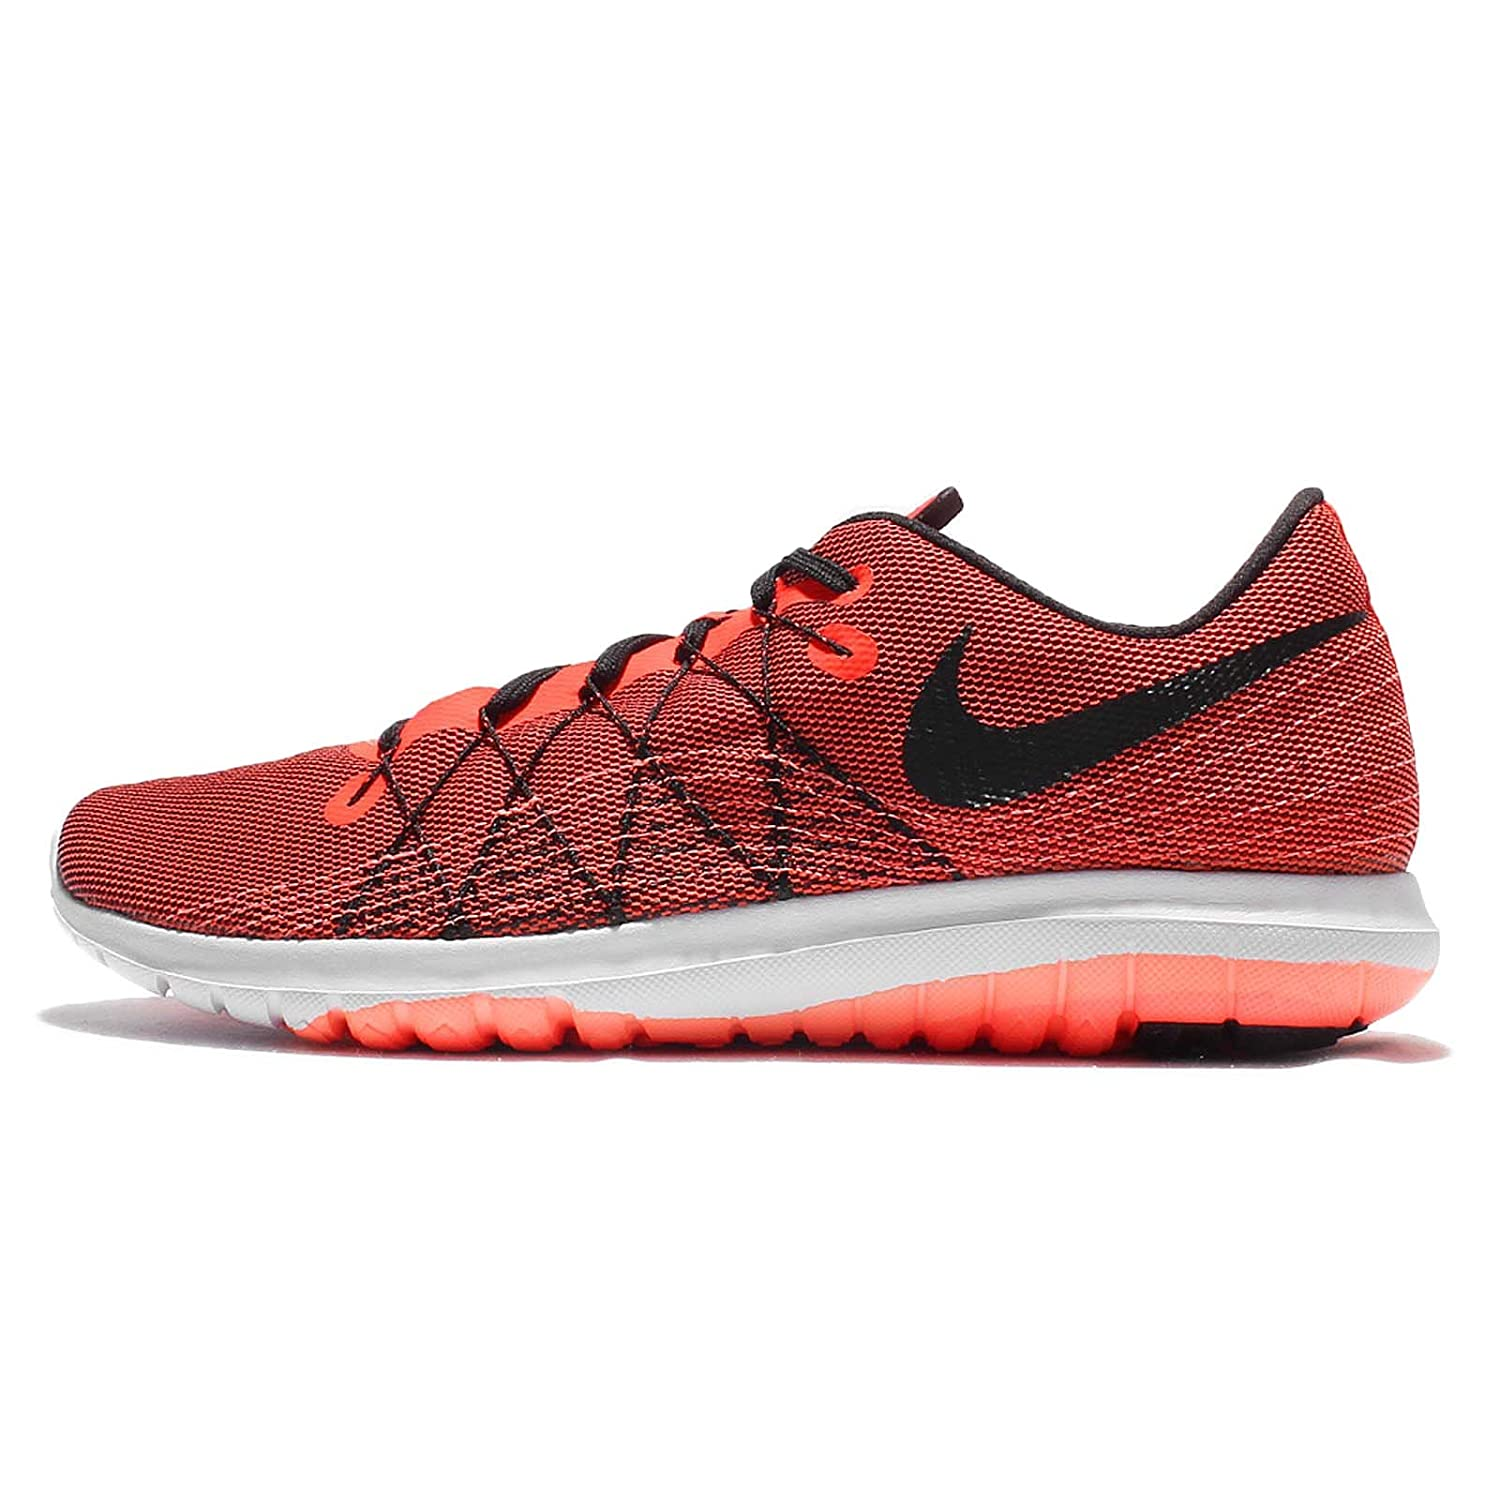 sports shoes dcfc4 61b00 Amazon.com   Nike Flex Fury 2 Total Crimson 819134-800 Men s Running  Sneakers 14 US   Running